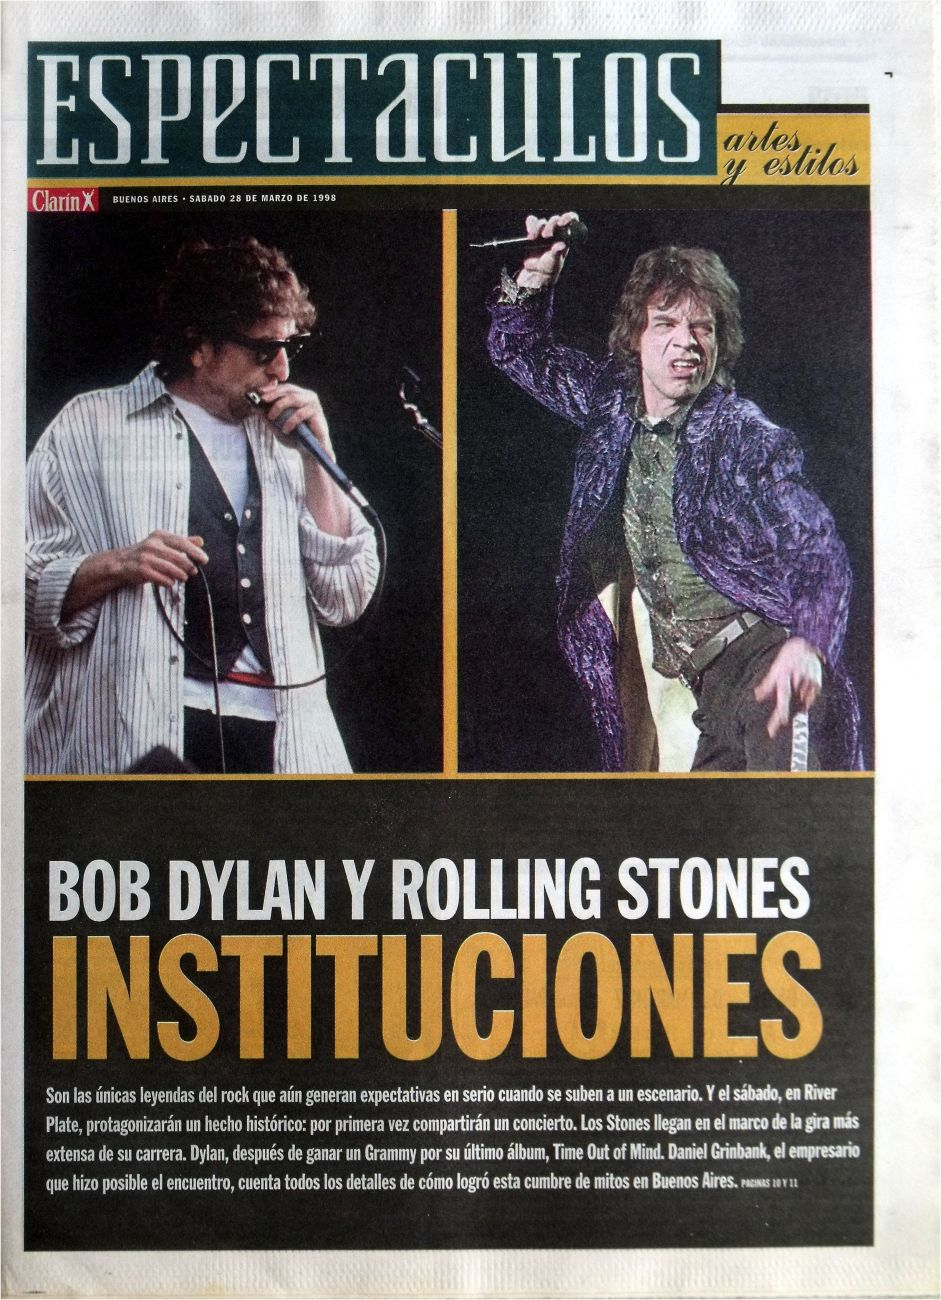 clarin argentina espectaculos 28 March 1998 supplement Bob Dylan cover story